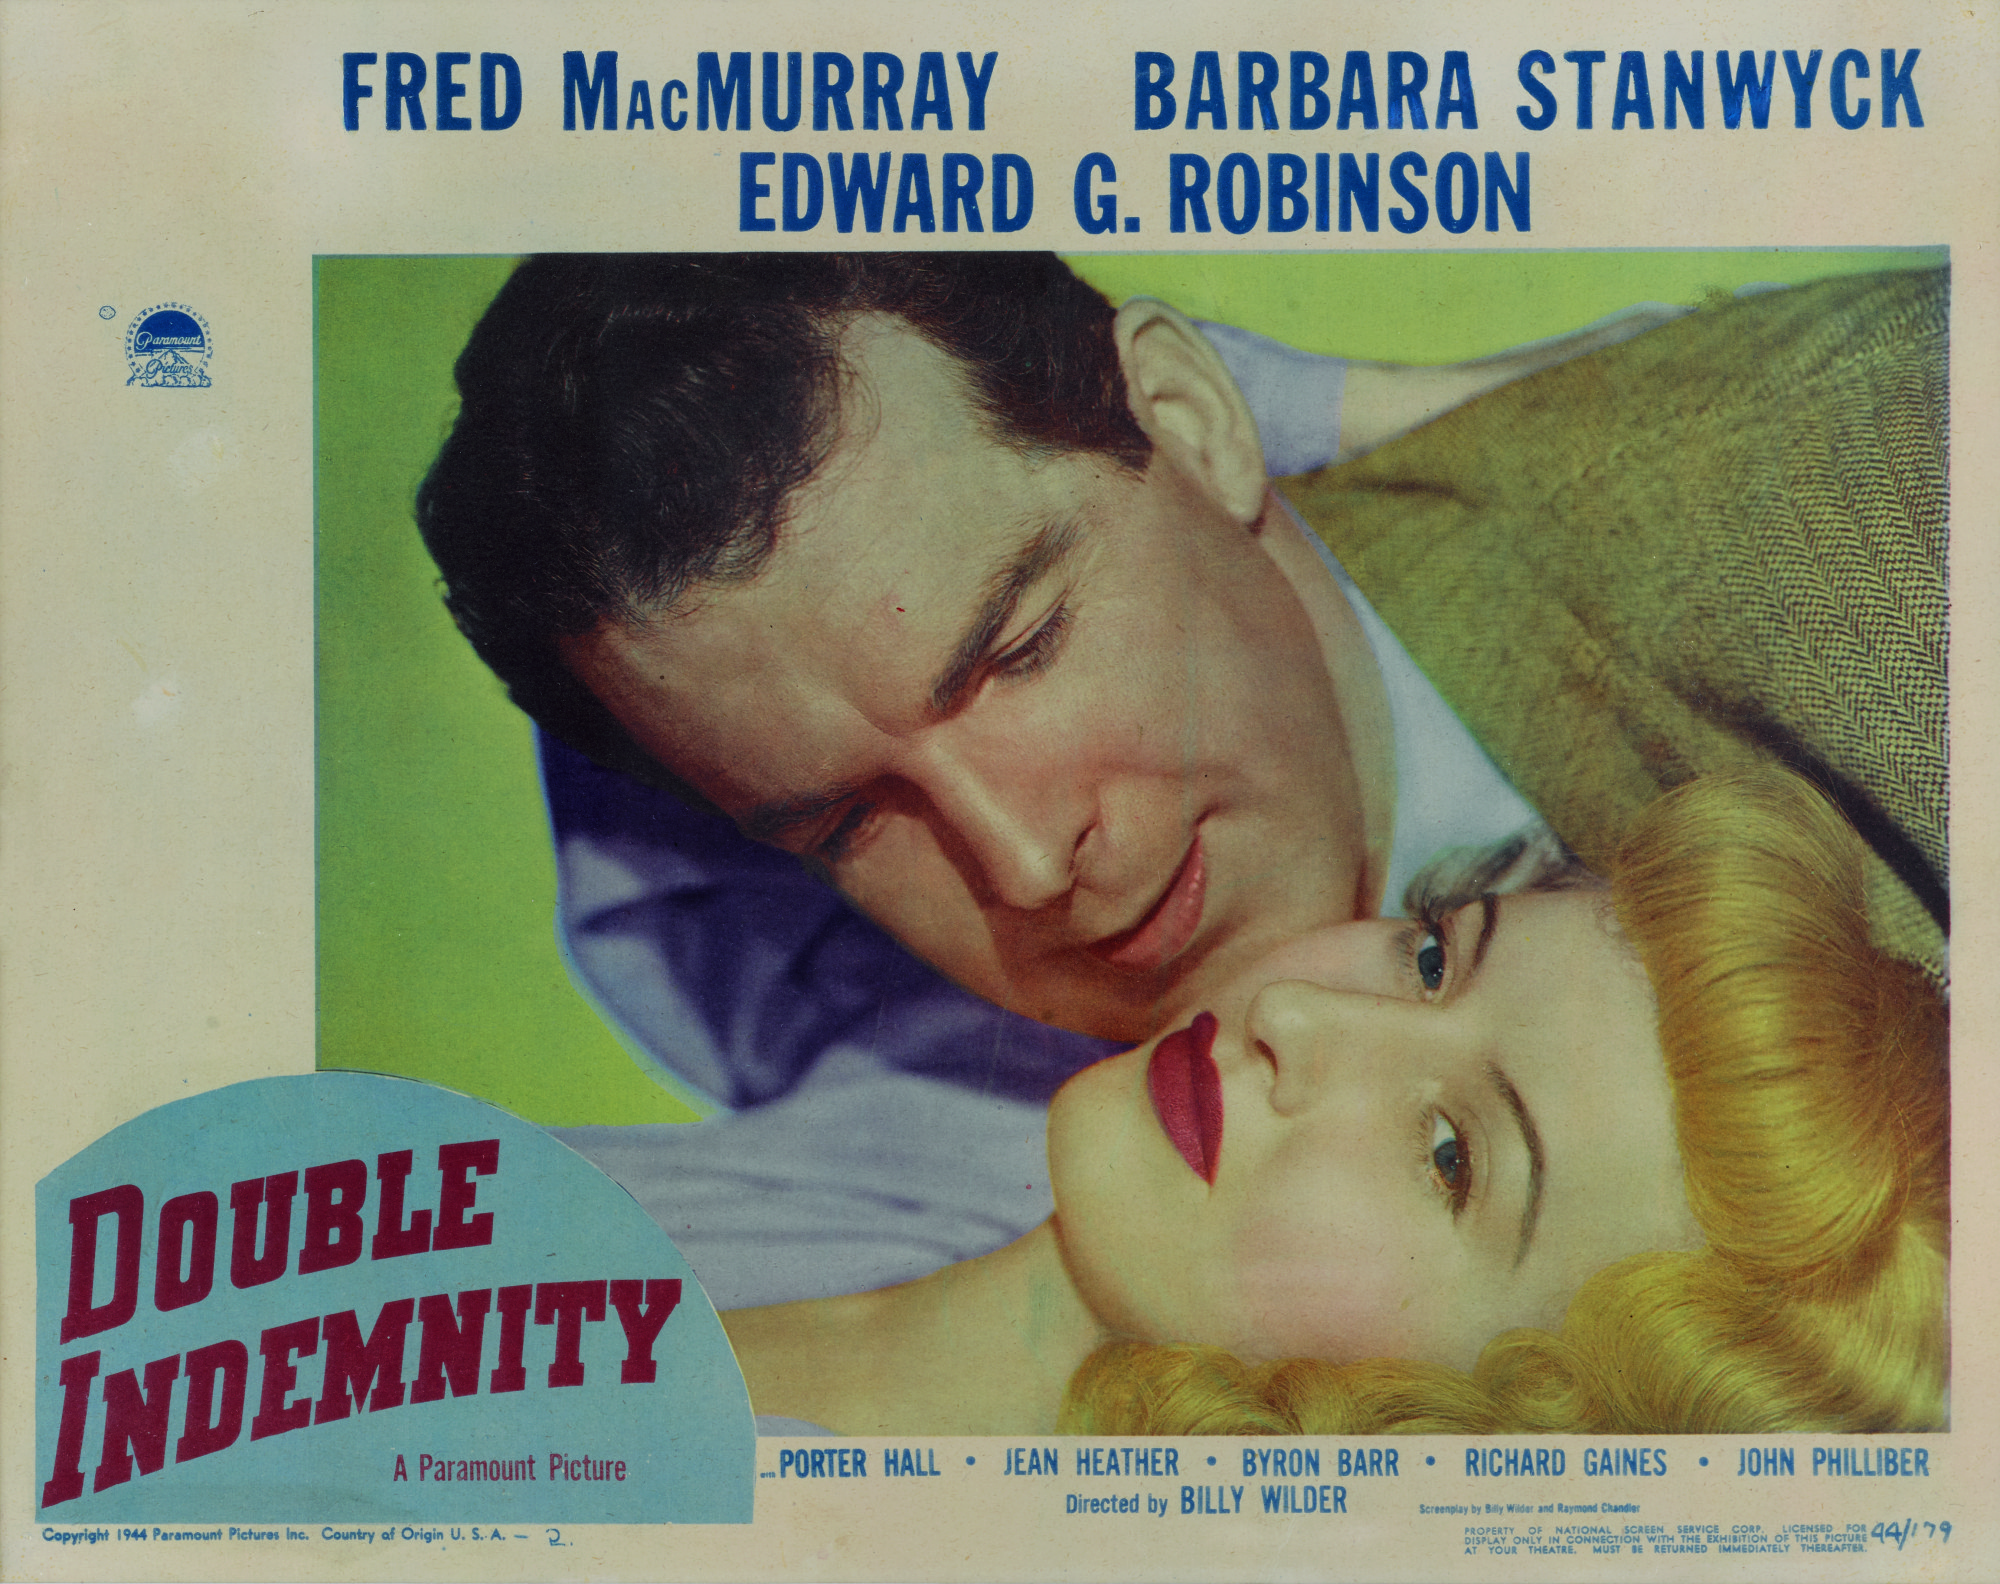 Double Indemnity (1944) lobby card, US   Original Film Posters Online    Collectibles   Sotheby's